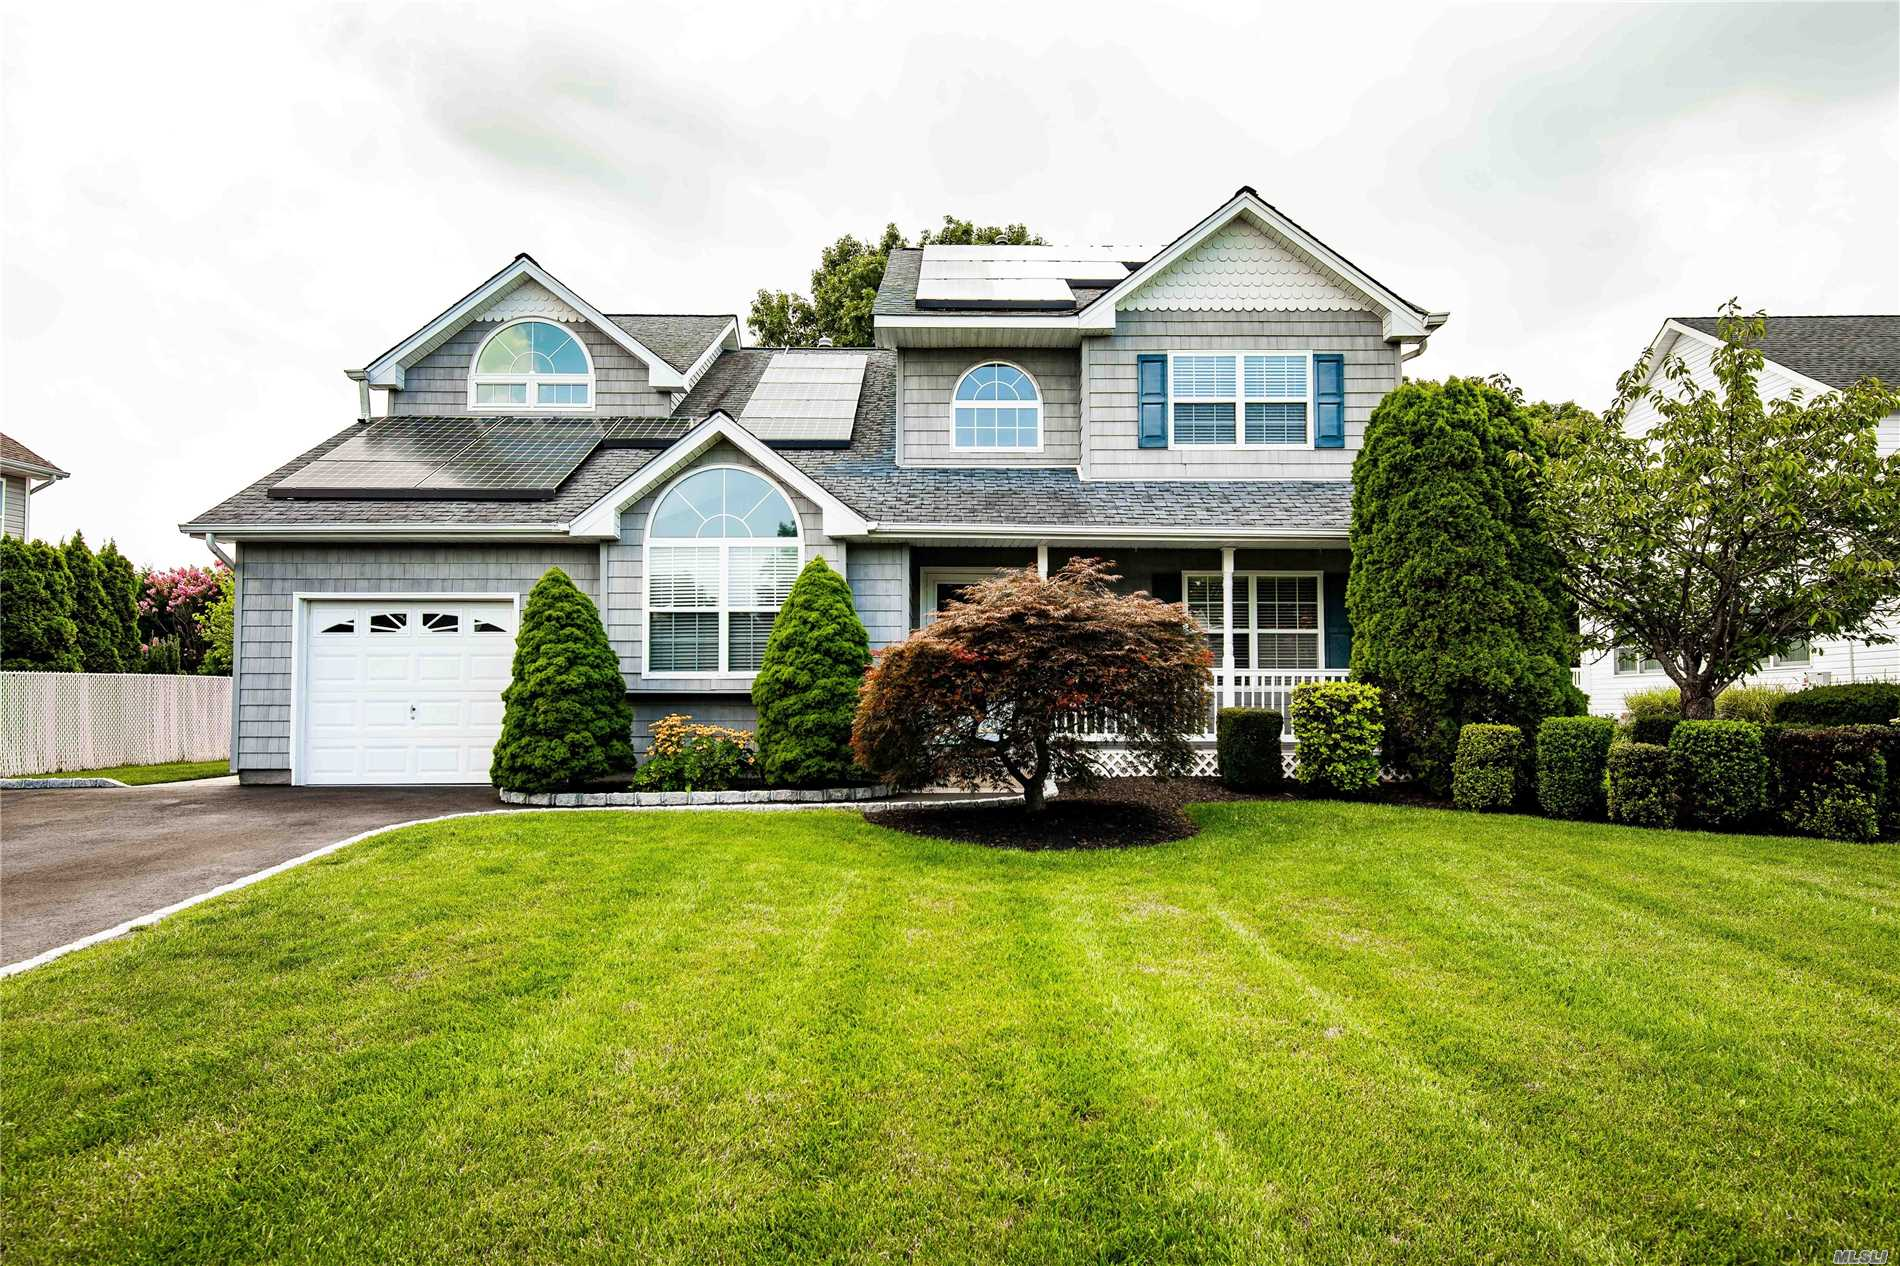 A Picture Perfect Location! Welcome To This Lovely 4 Bedroom, 2.5 Bath Home On A Quiet Cul-De-Sac In The Desirable Country Estates Neighborhood. Home Features A Spacious Kitchen, Hardwood Floors, Central-Air Conditioning, Solar Energy And Large Manicured Property. Commack School District